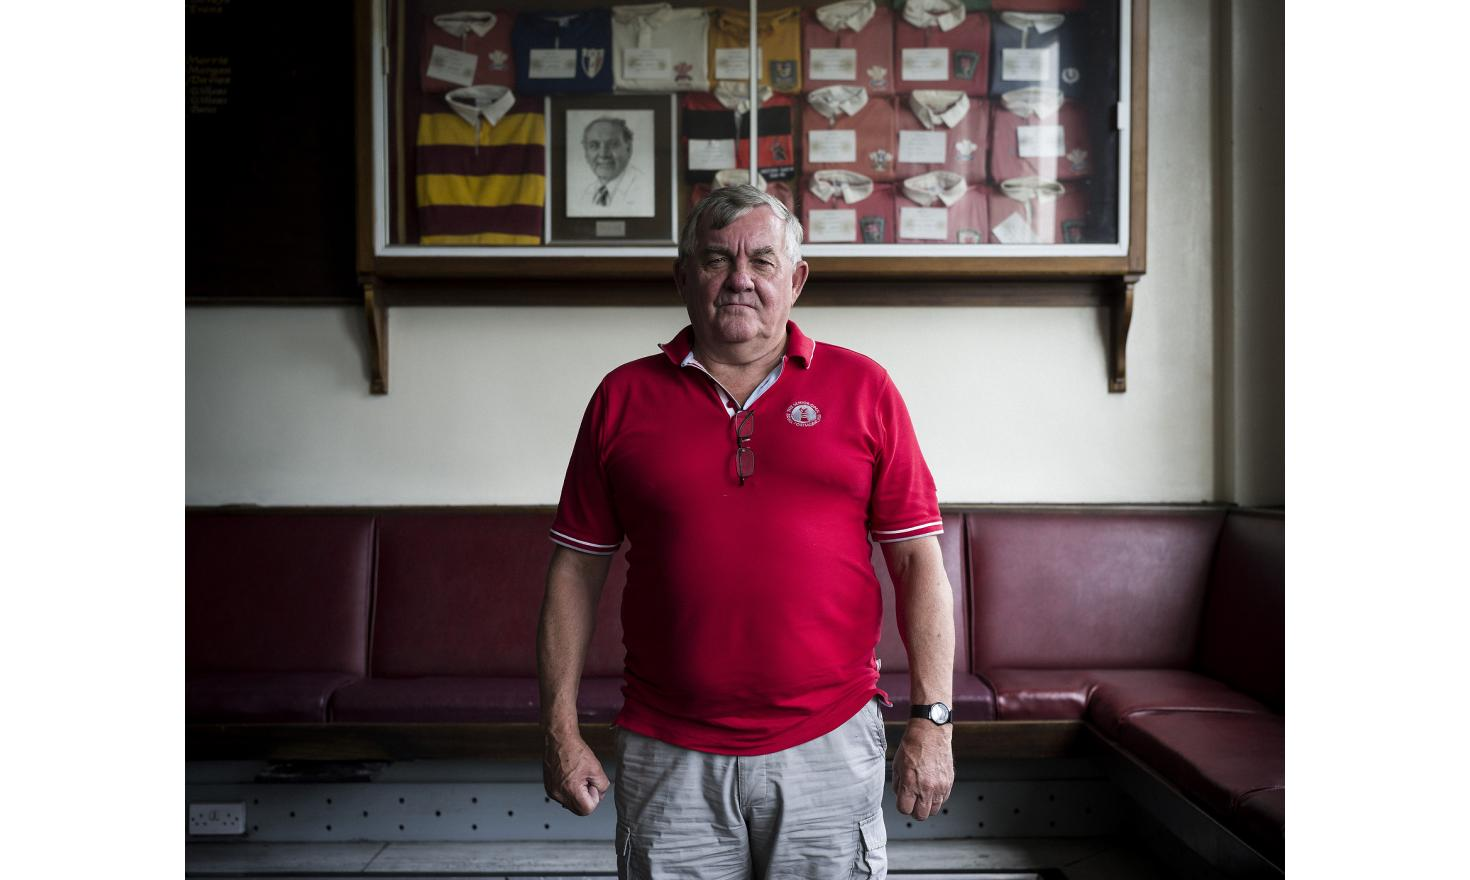 Jeff Kingdom is a retired steel-worker, living in Port Talbot in South Wales. He voted to leave in last year's referendum on EU membership.